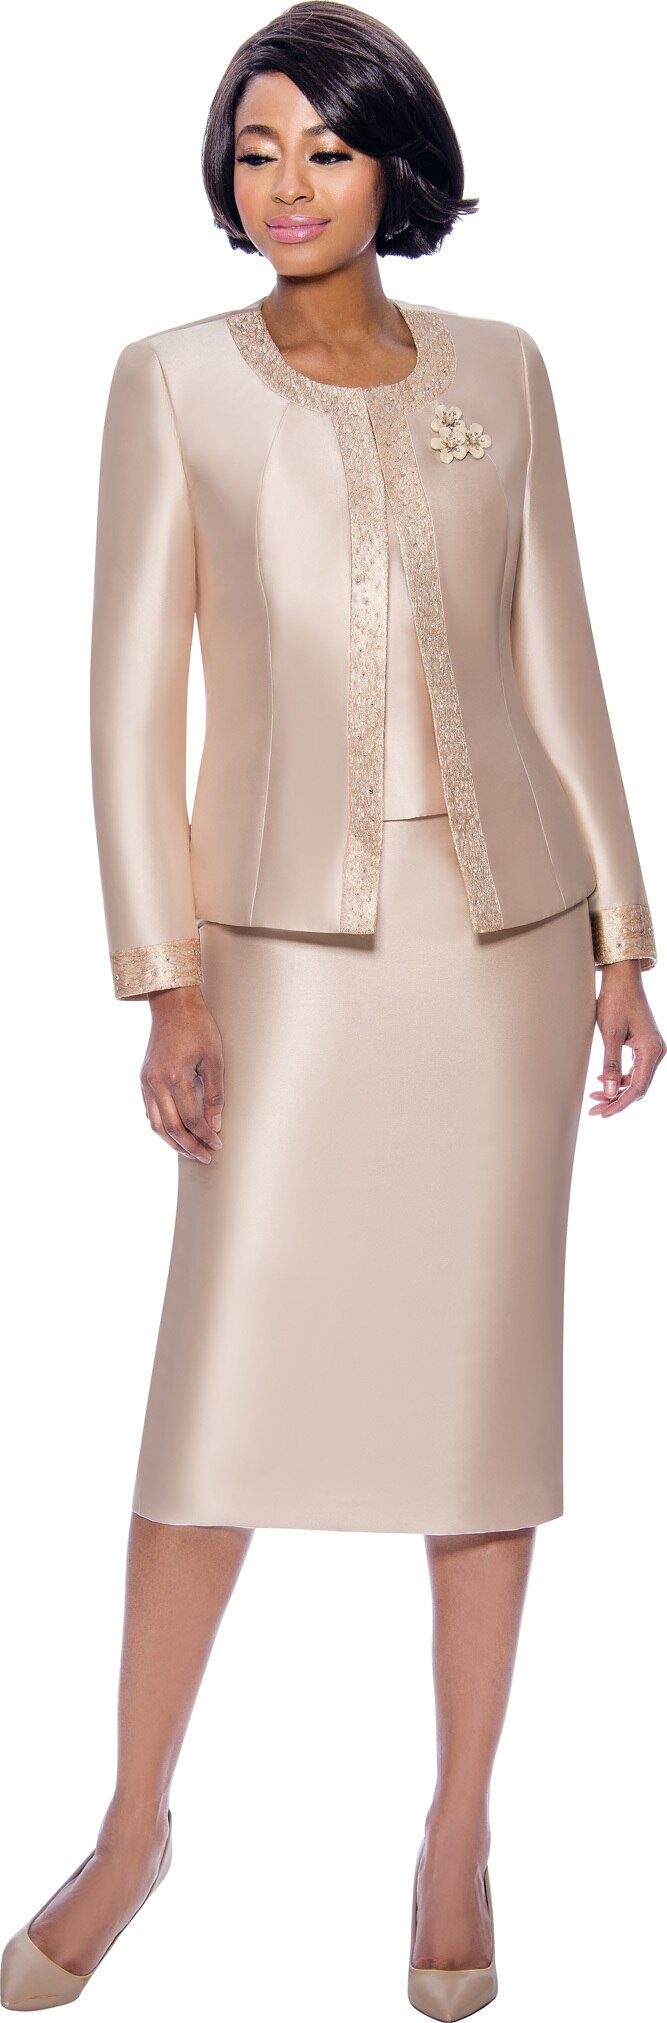 Terramina Suit 7637-Champagne - Church Suits For Less